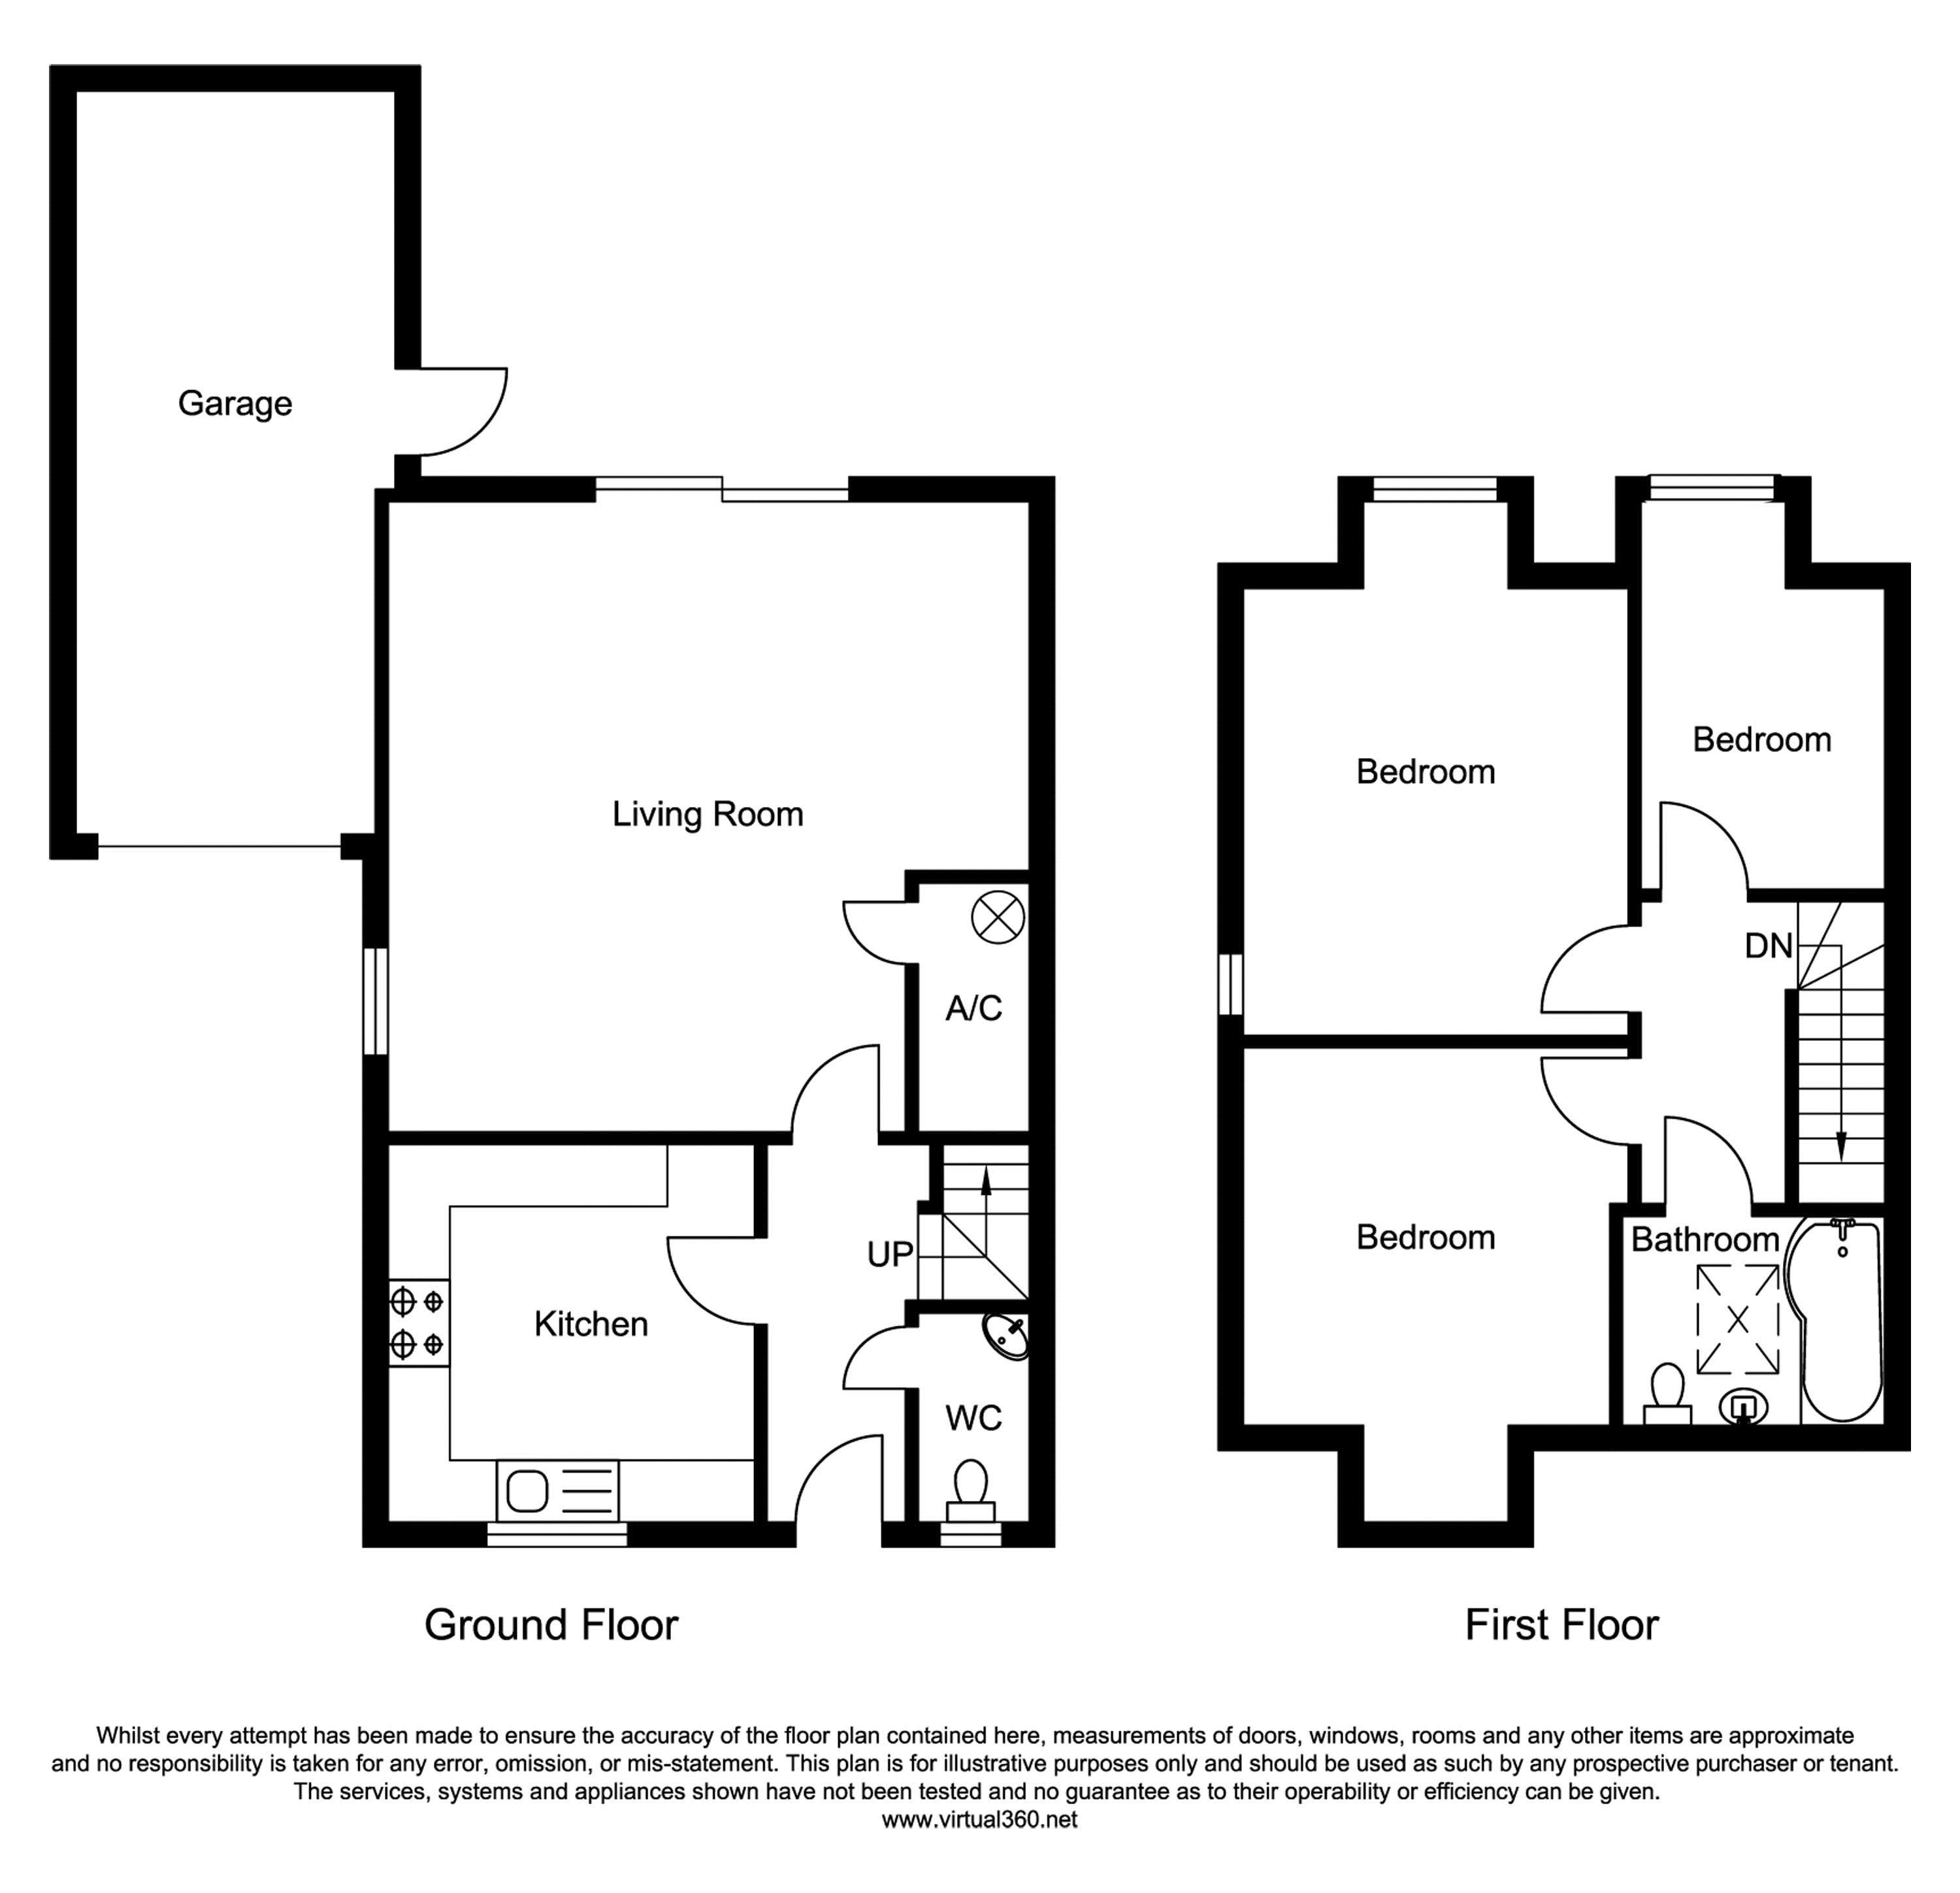 Penbere Close, Pamber Heath, Hampshire floor plan